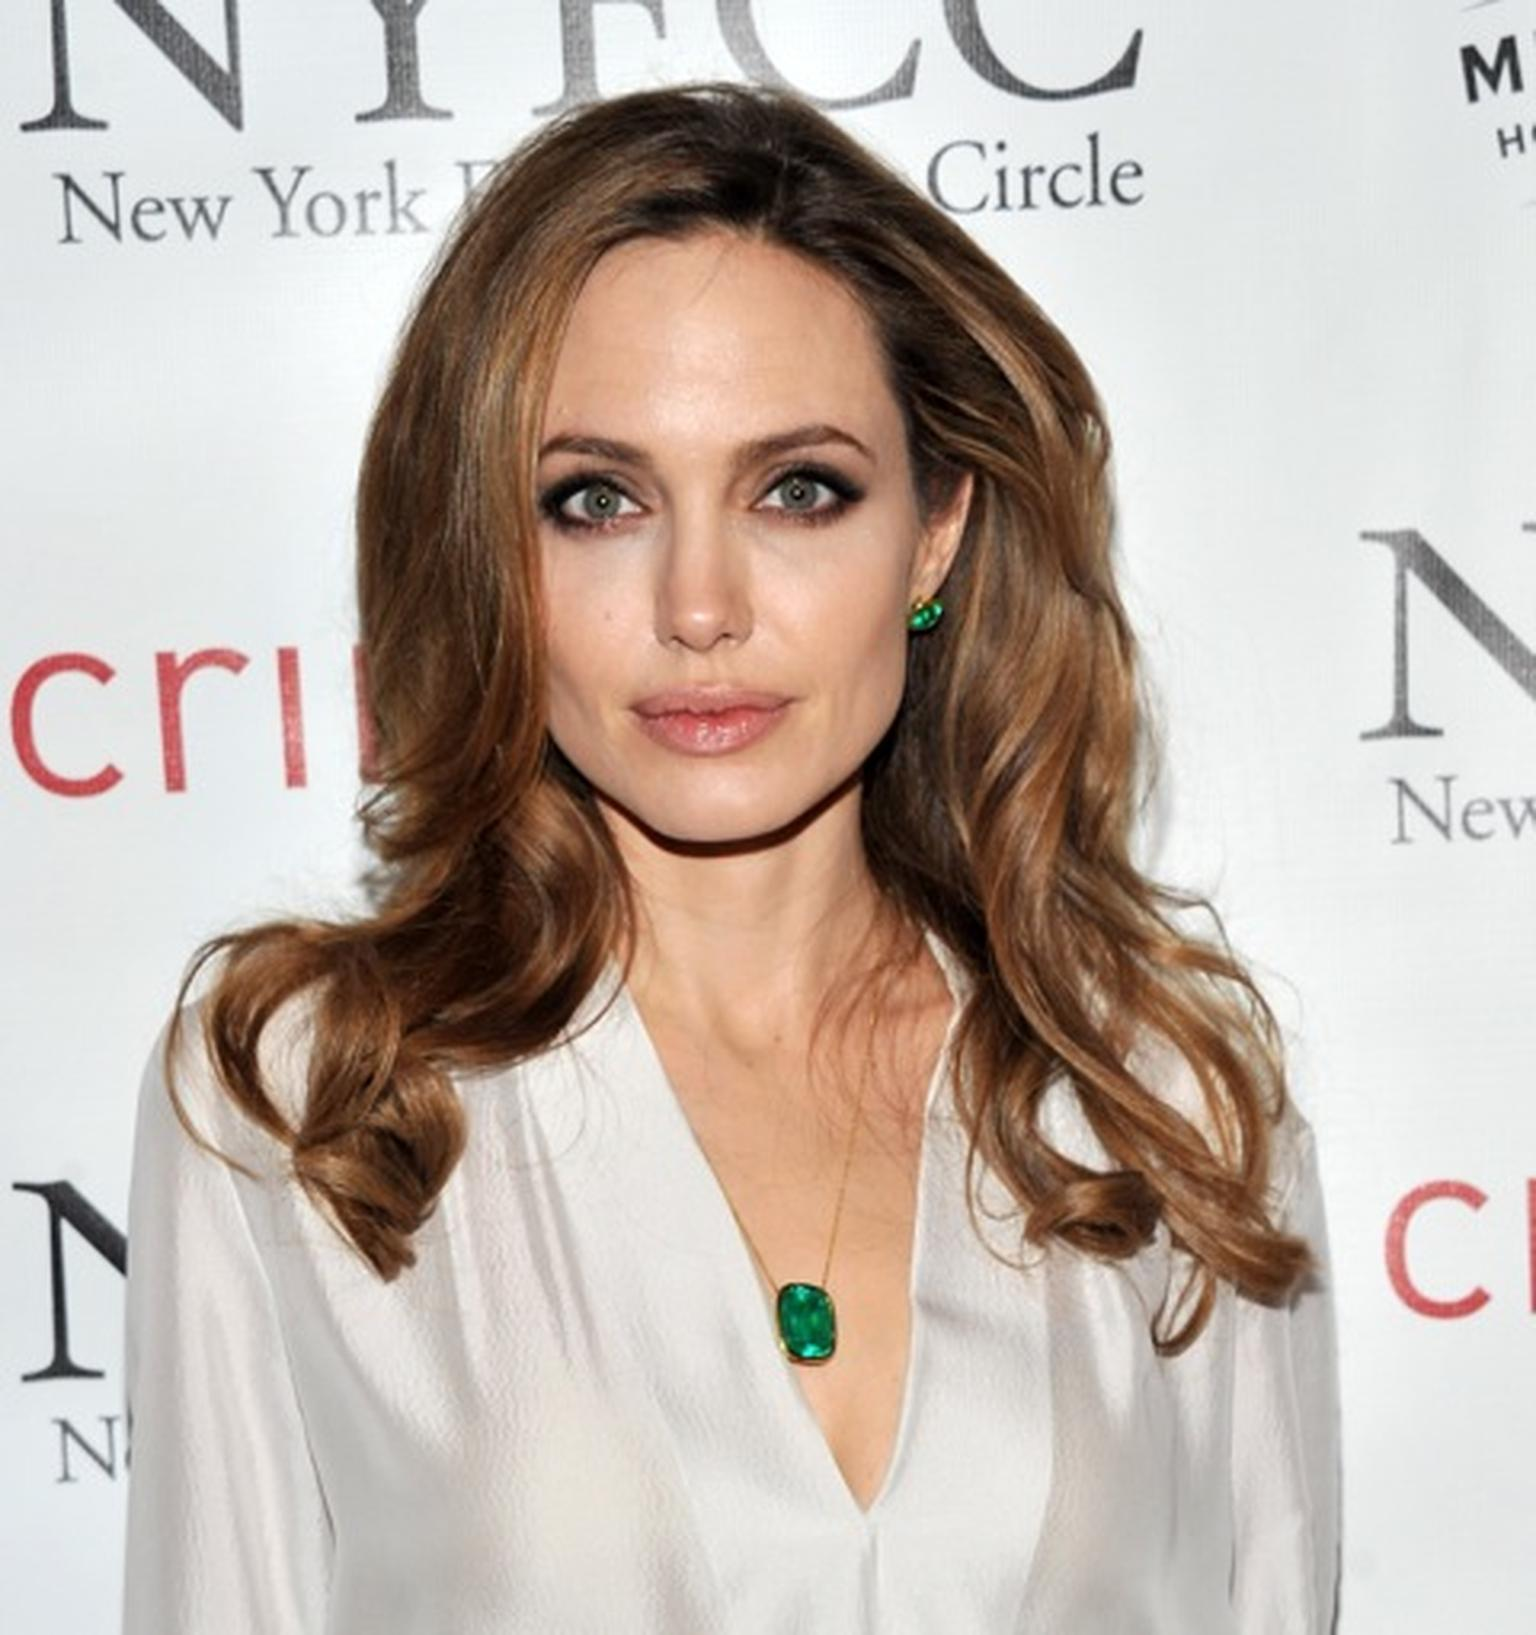 Angelina Jolie wearing Gemfield